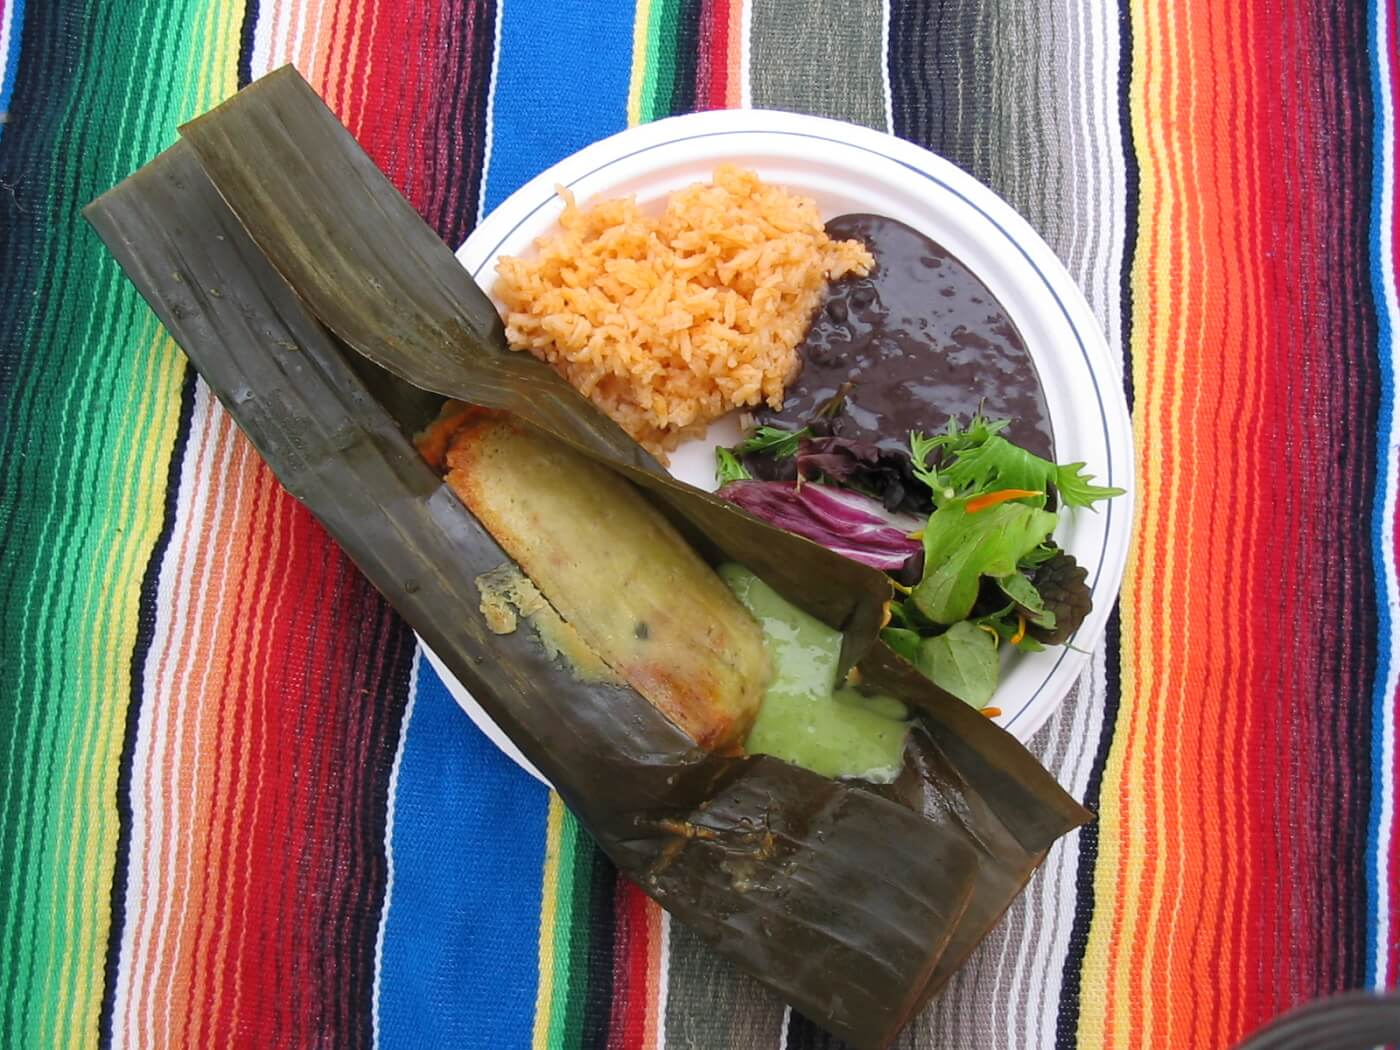 banana leaf tamale with black beans and rice on a plate, sitting on a colorful blanket